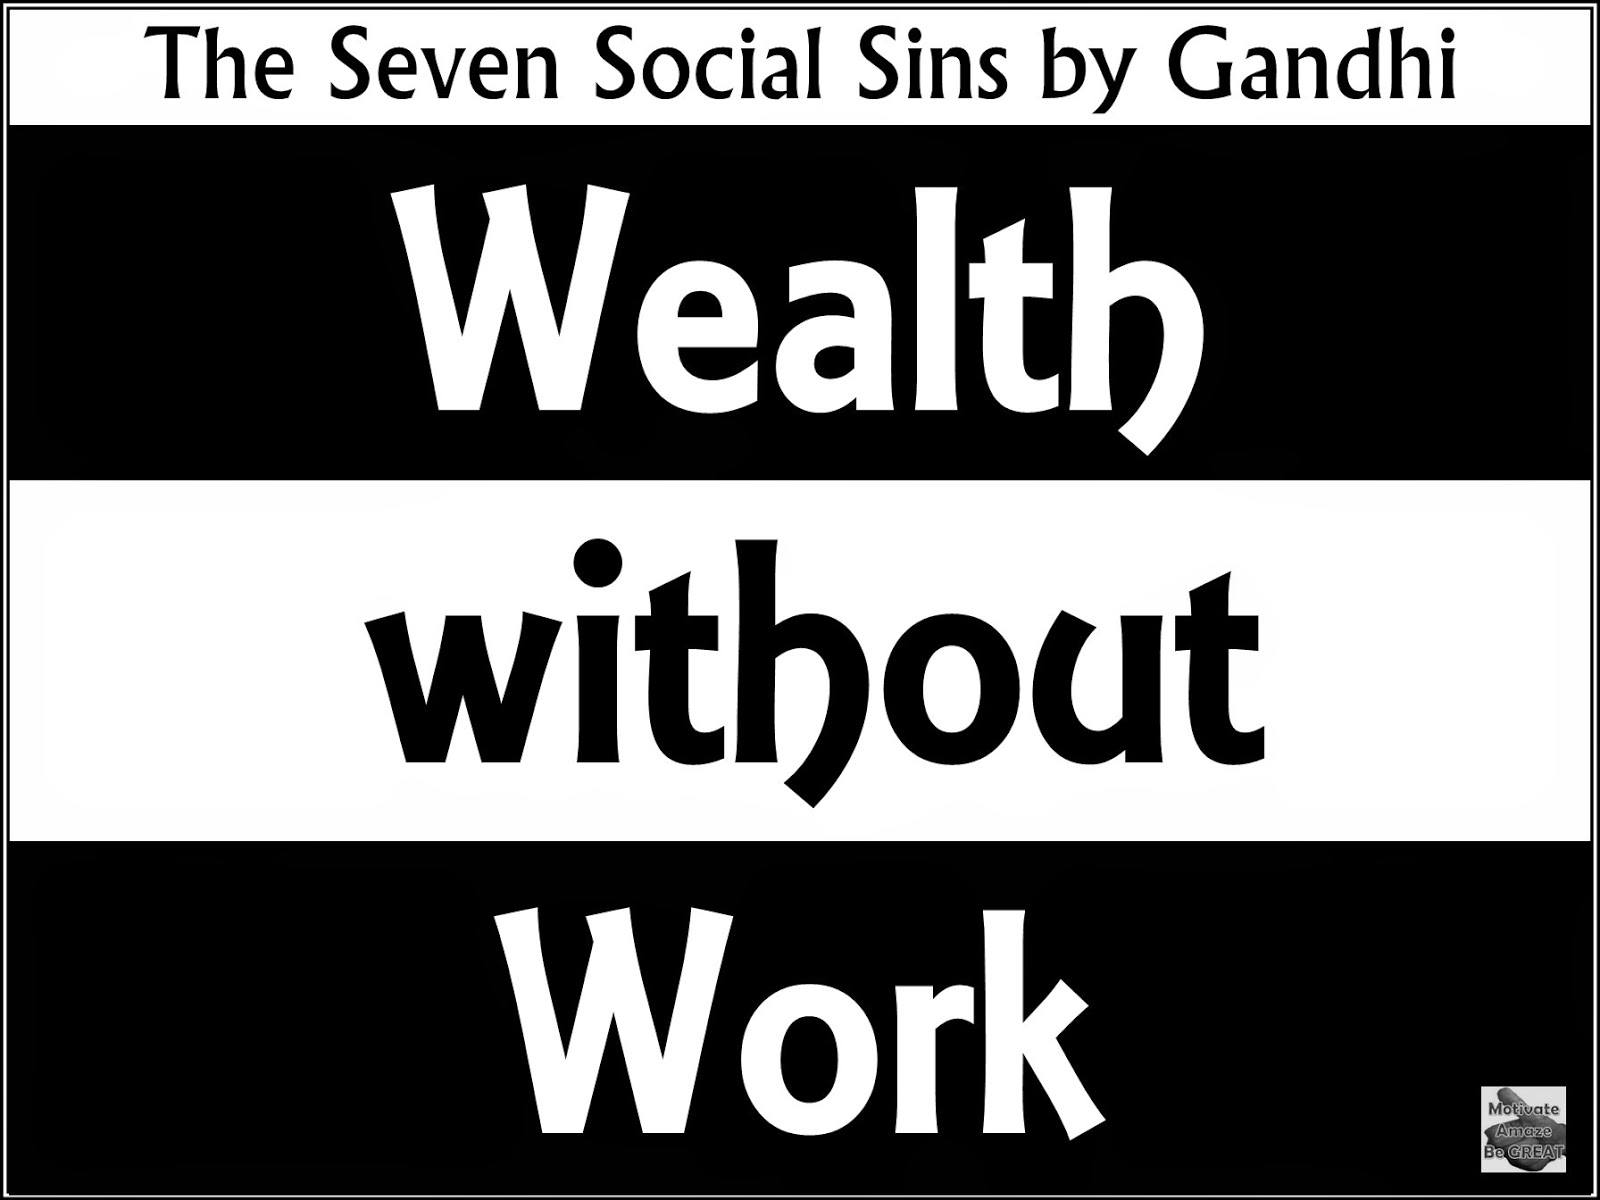 Wealth, work, Seven, social, sins, Gandhi, inspirational, motivation